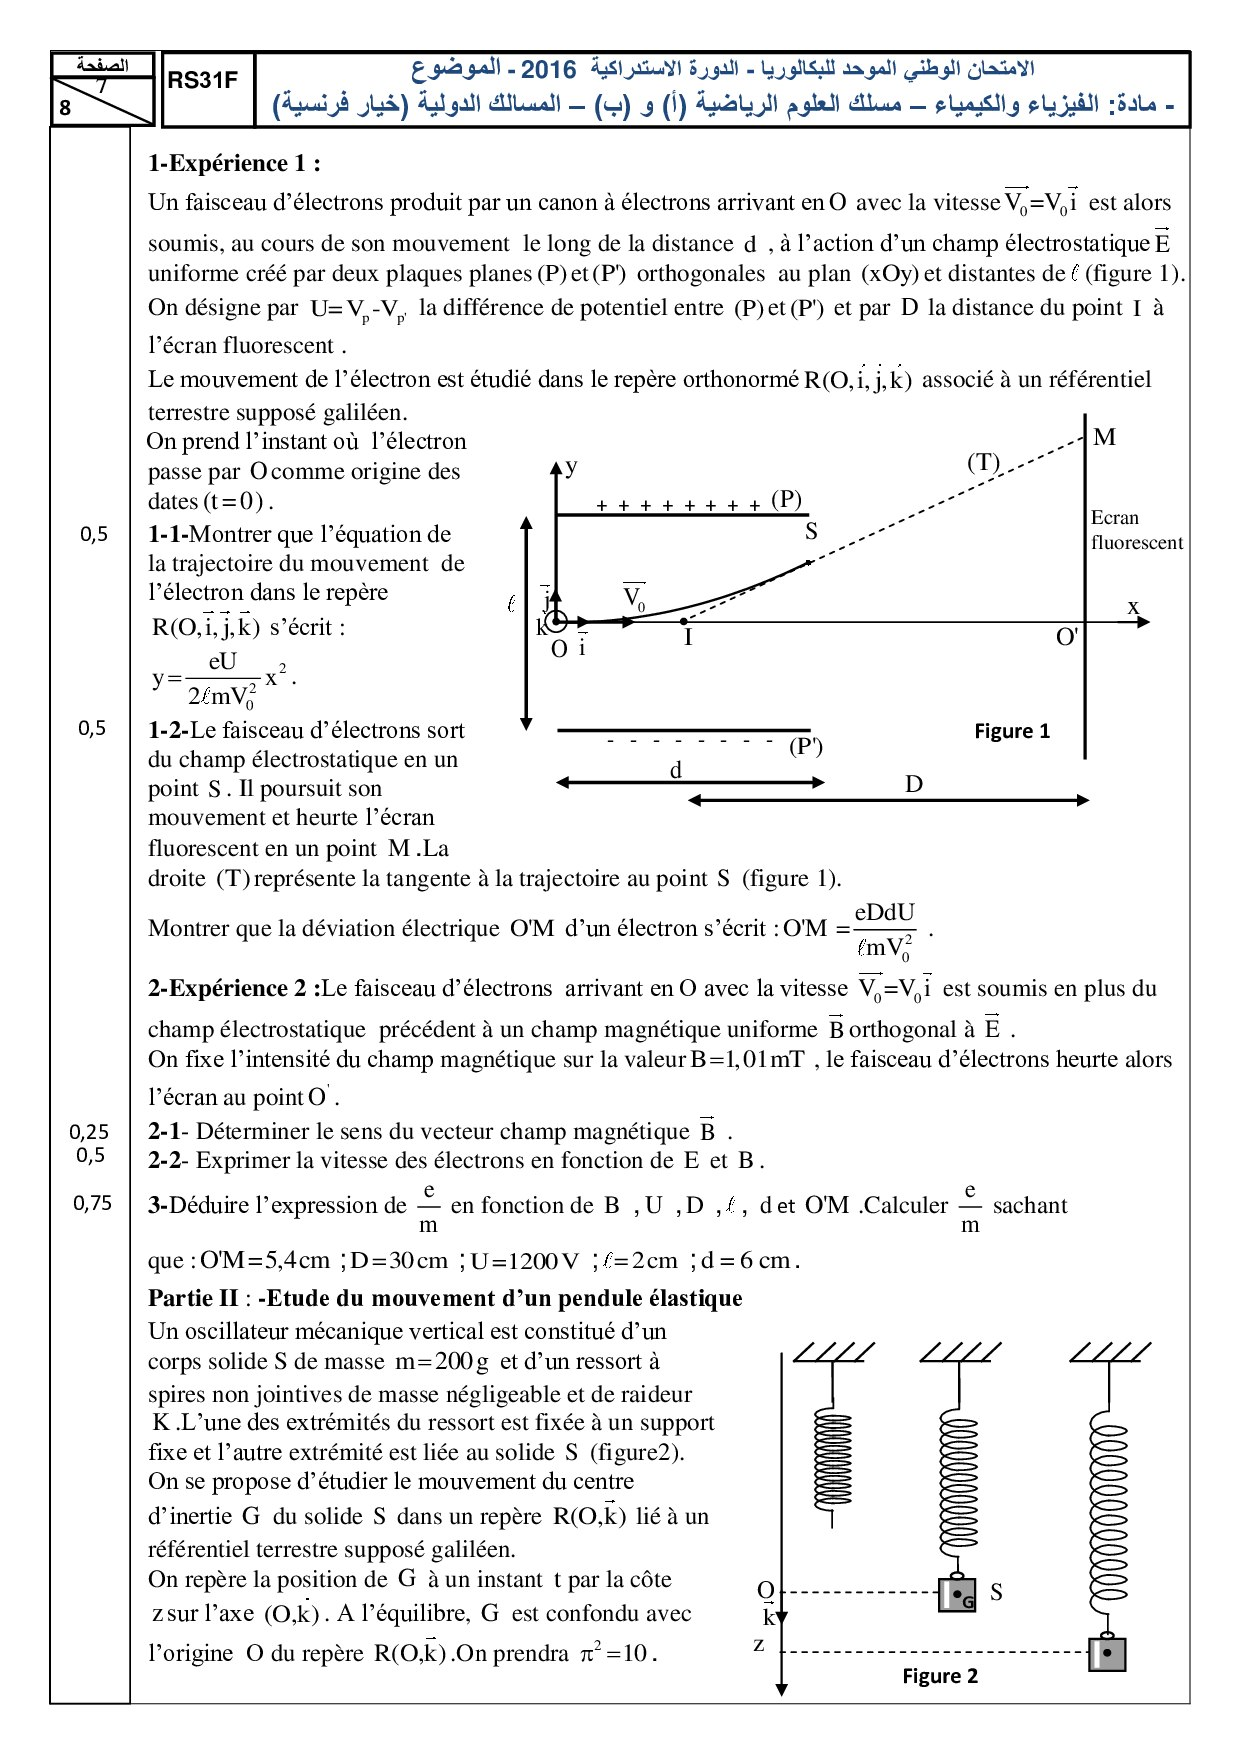 Examen National Physique-Chimie Sciences Maths 2016 Rattrapage - Sujet7.jpg